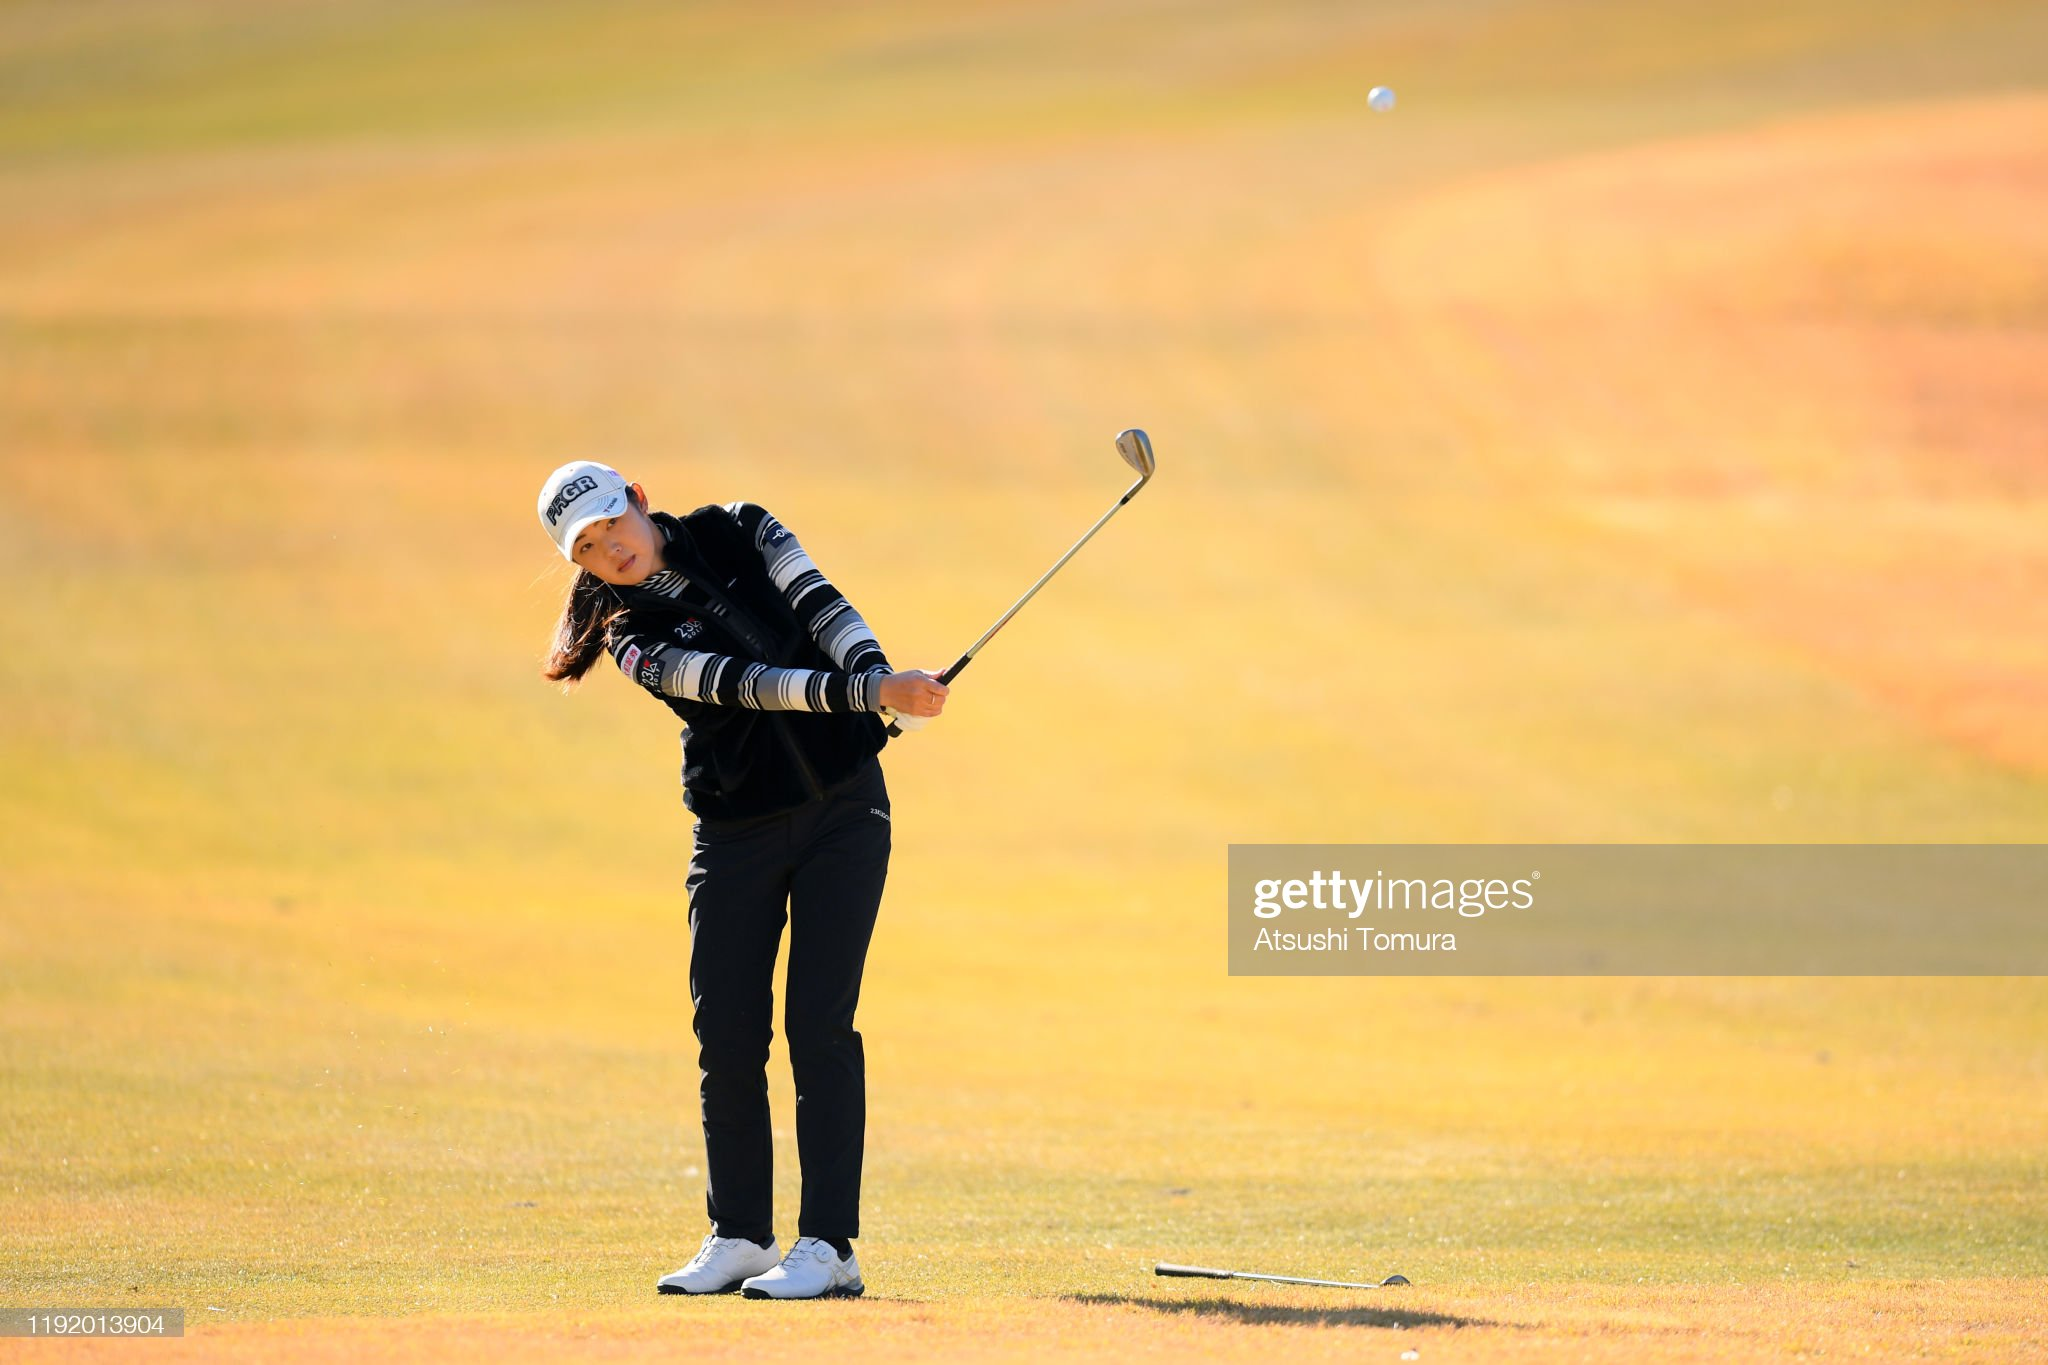 https://media.gettyimages.com/photos/rie-tsuji-of-japan-chips-onto-the-11th-green-during-the-third-round-picture-id1192013904?s=2048x2048